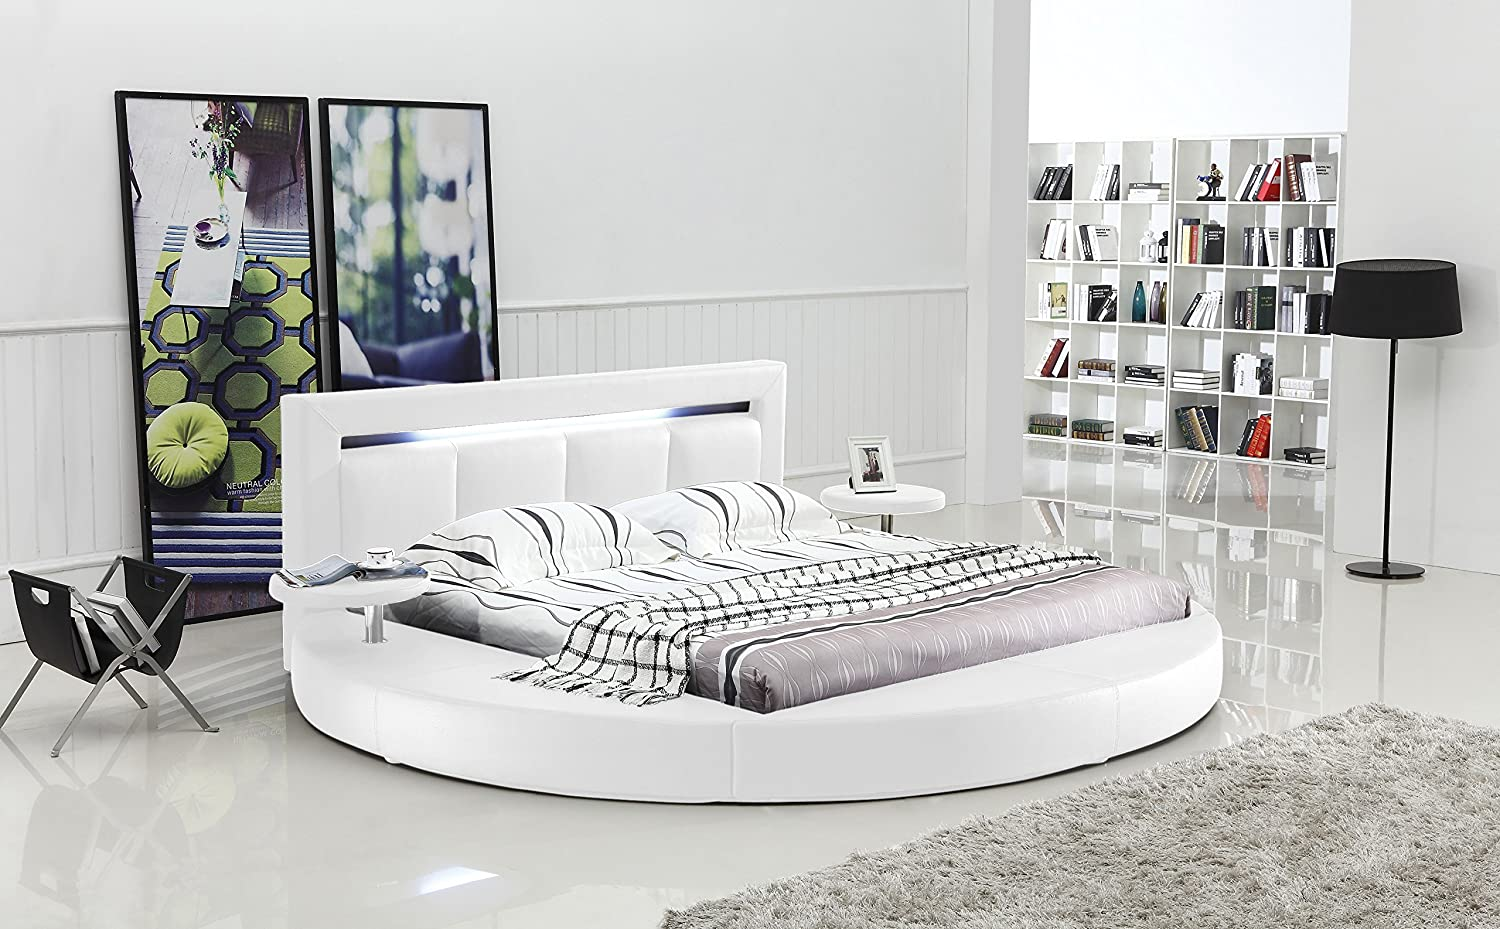 Three Stylish Ideas For your Round California King Bed